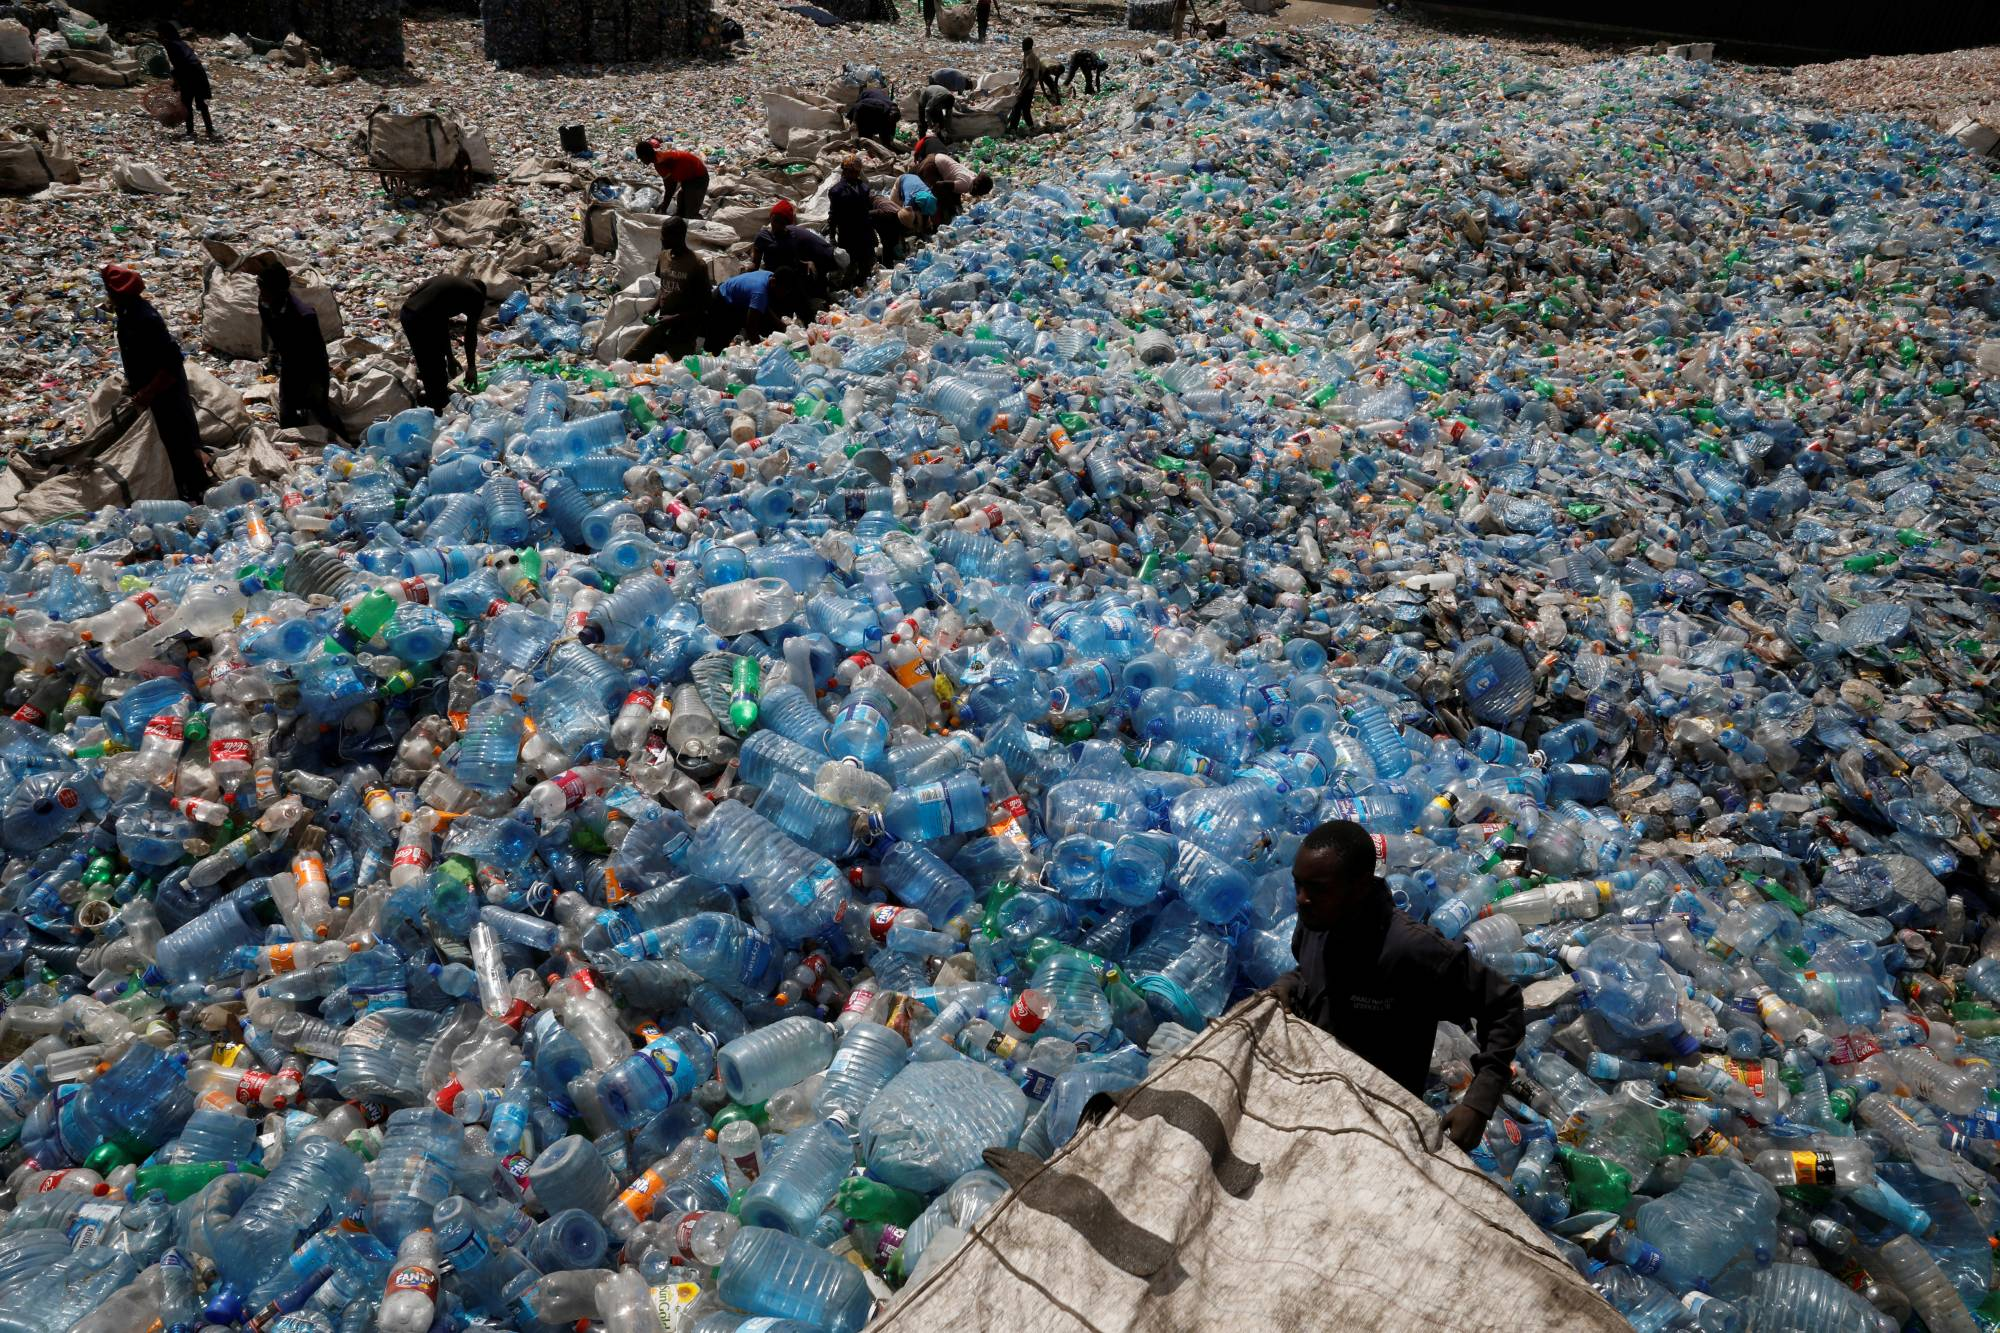 Employees sort plastic bottles at the Weeco plastic recycling factory in the Athi River industrial zone near Nairobi, Kenya in 2019.   REUTERS